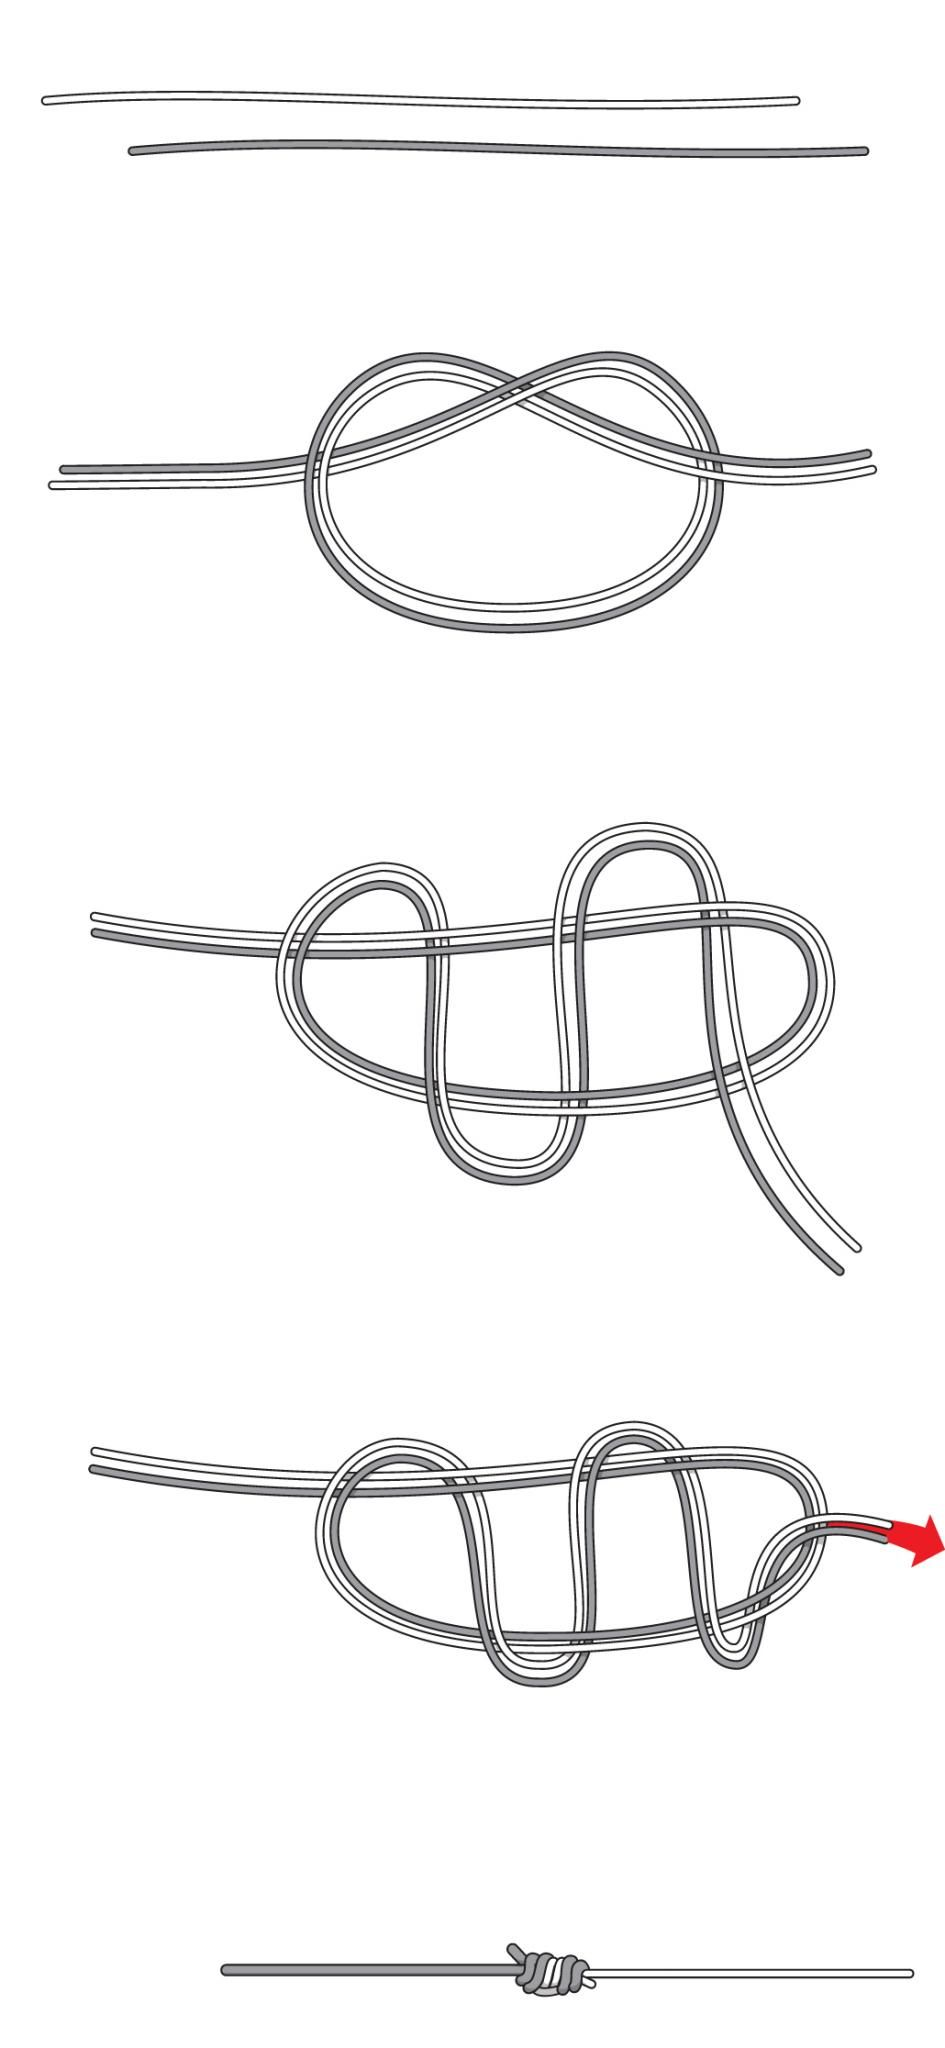 933f3707ff33 Fishing Knots  How to Tie The Four Strongest --By Field and Stream  --Photo s by John Merwin. The J Knot  Similar Sized Lined Connections ...